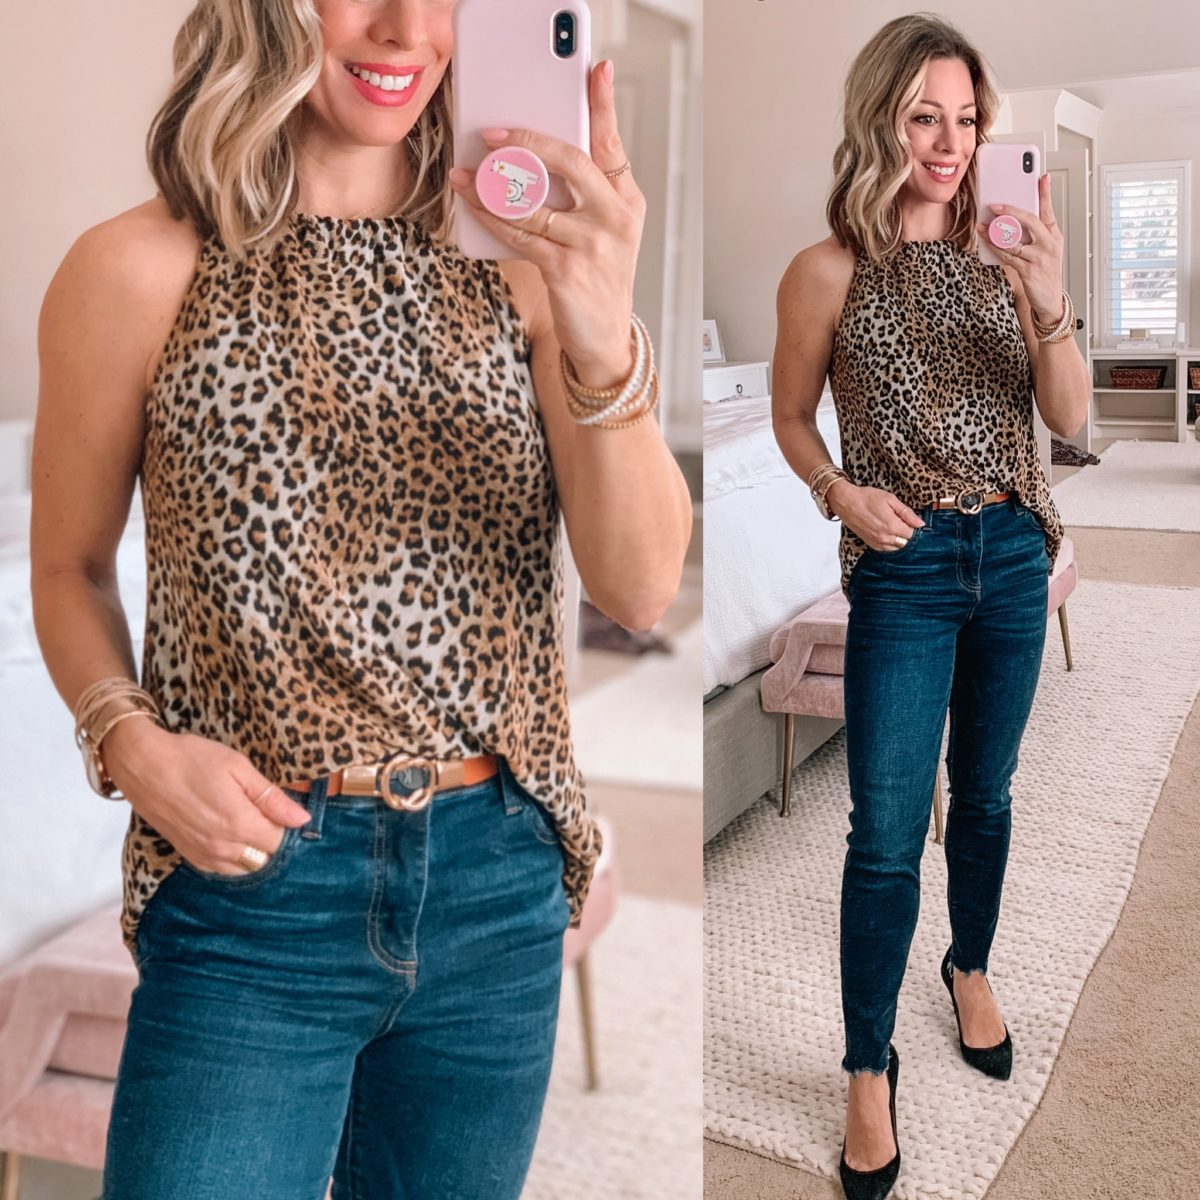 Leopard Sleeveless Top, Curved Hem Skinny Jeans, Black Pumps